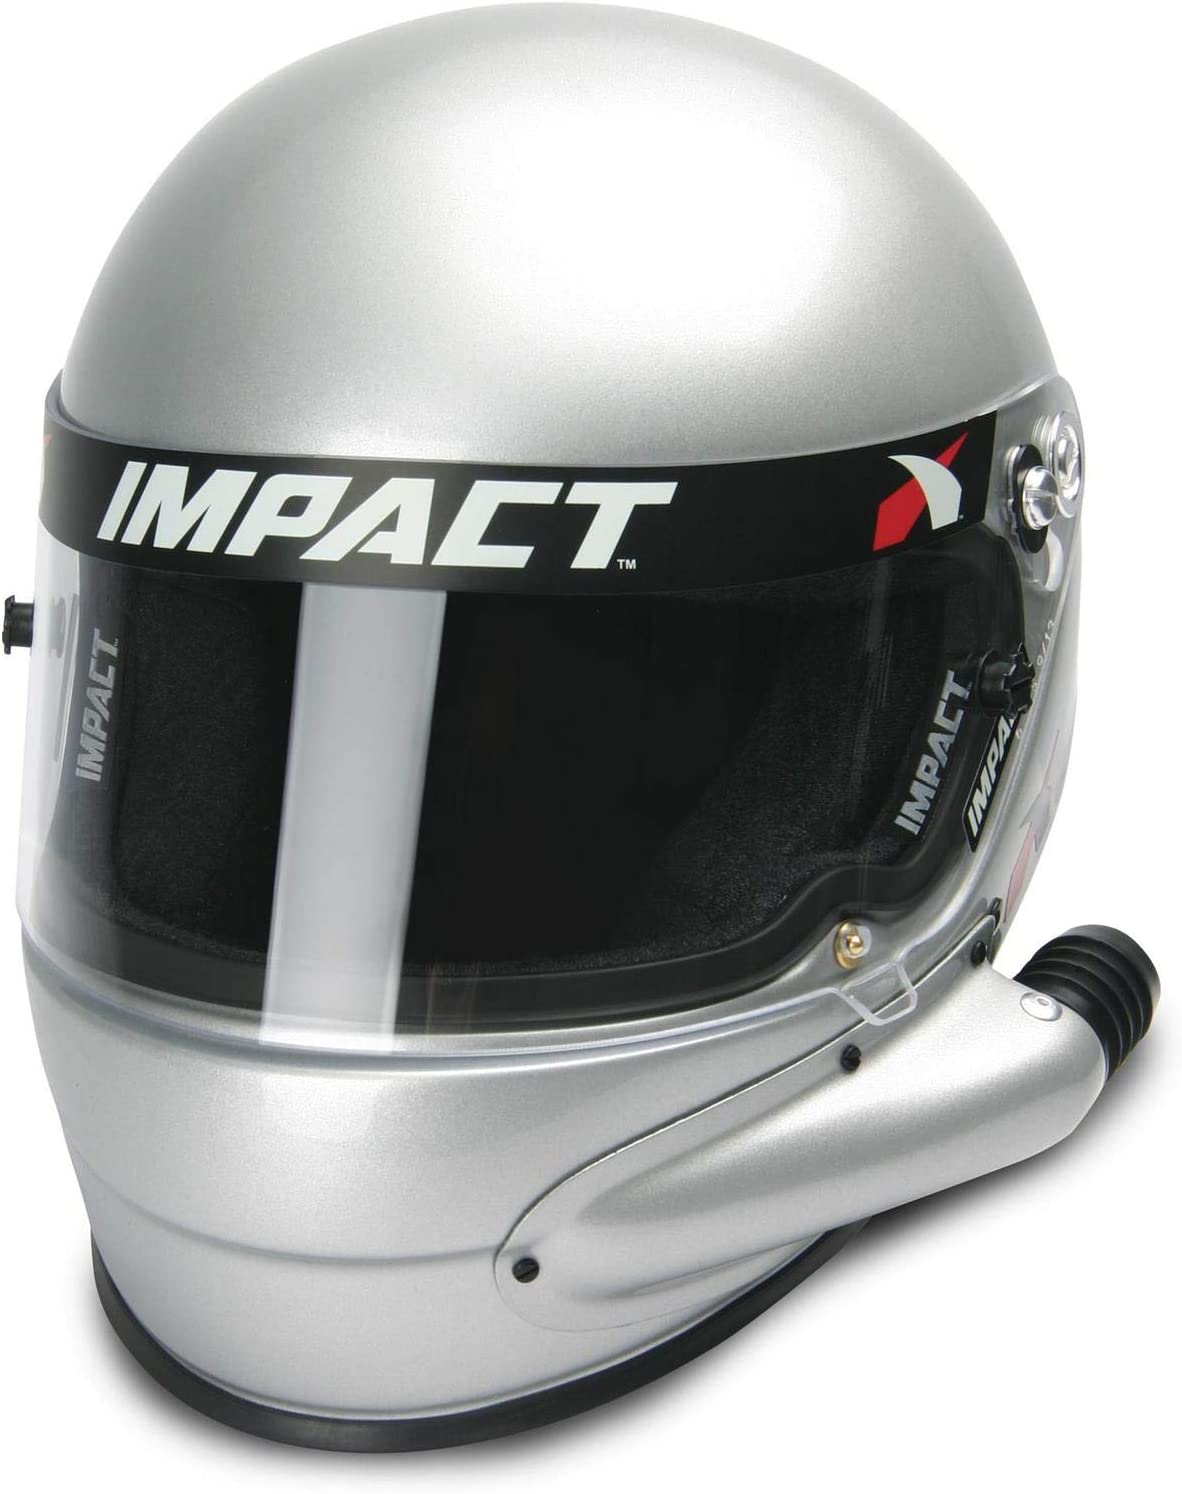 Impact Racing 14715312 Helmet - 1320 Side Bl Recommended price SM SNELL15 Air Flat